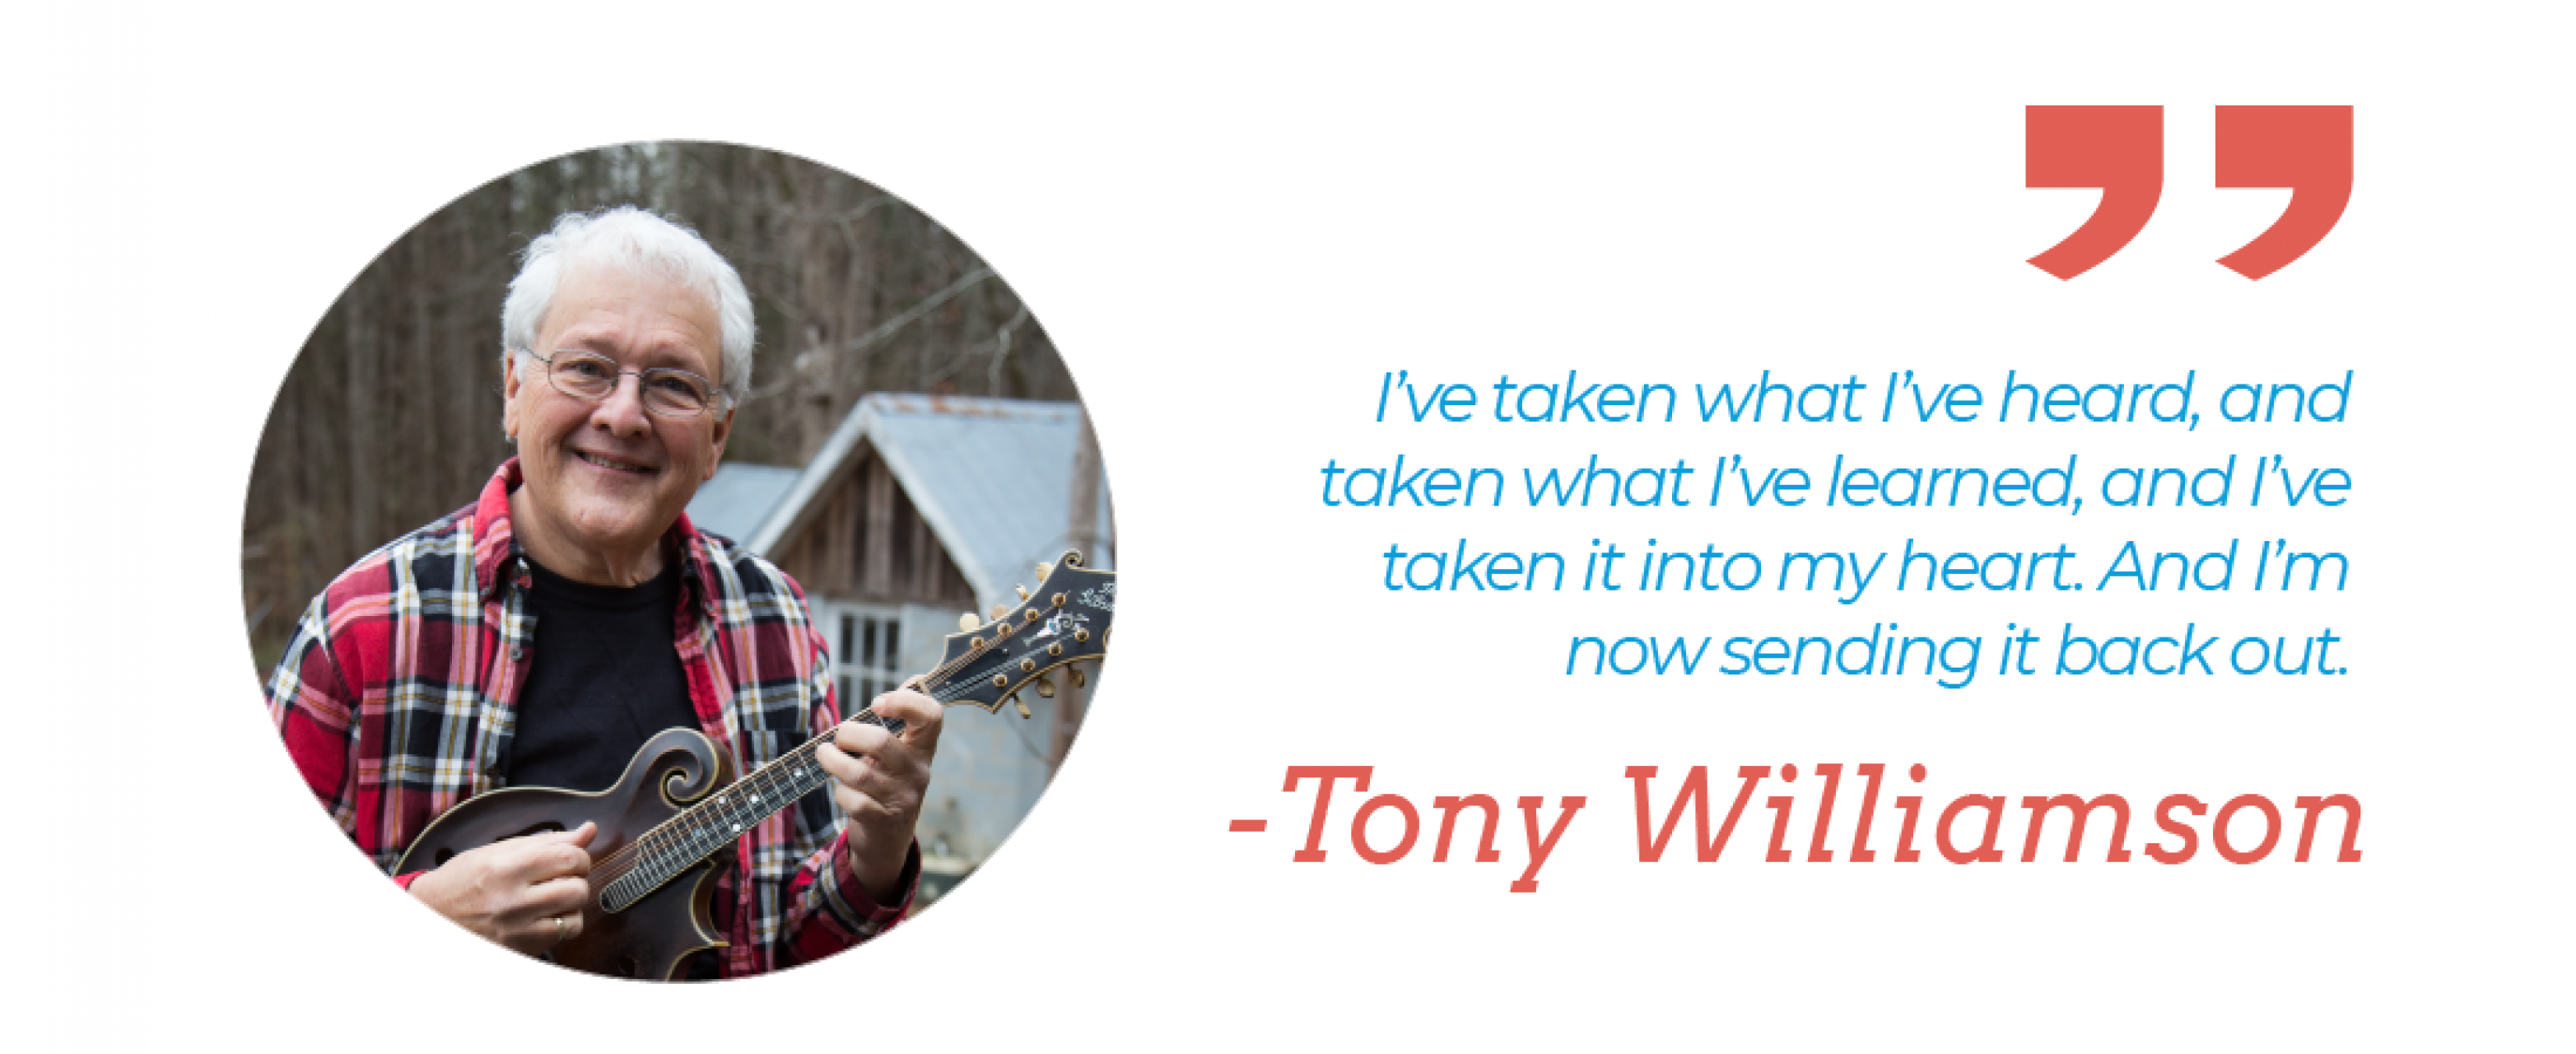 """I've taken what I've heard, and taken what I've learned, and I've taken it into my heart. And I'm now sending it back out."" – Tony Williamson"""